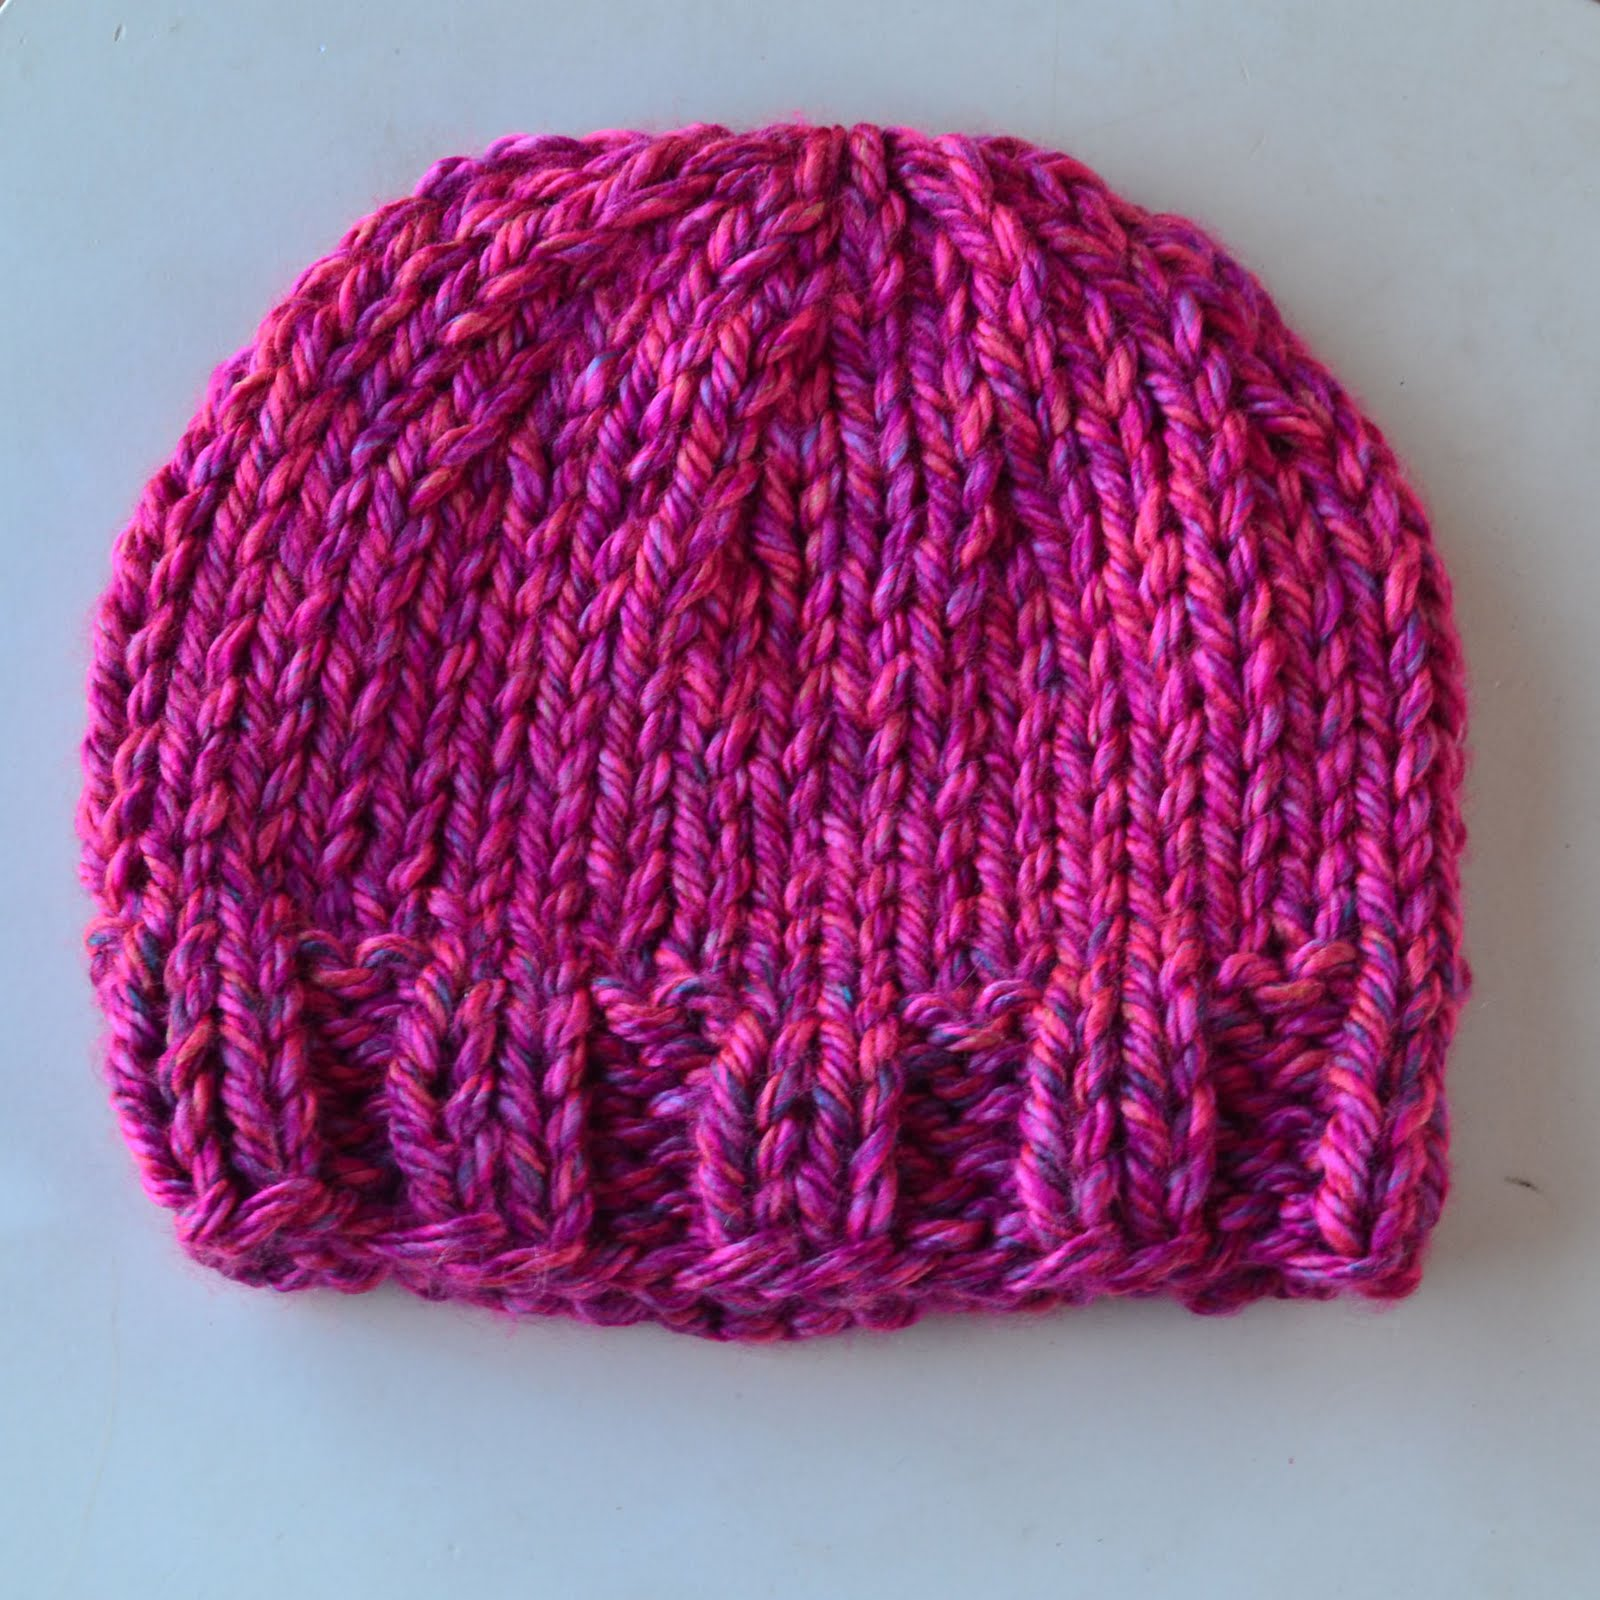 Knitting Patterns For Beanies With Straight Needles : Crochet in Color: Pretty Azalea Knitted Hat